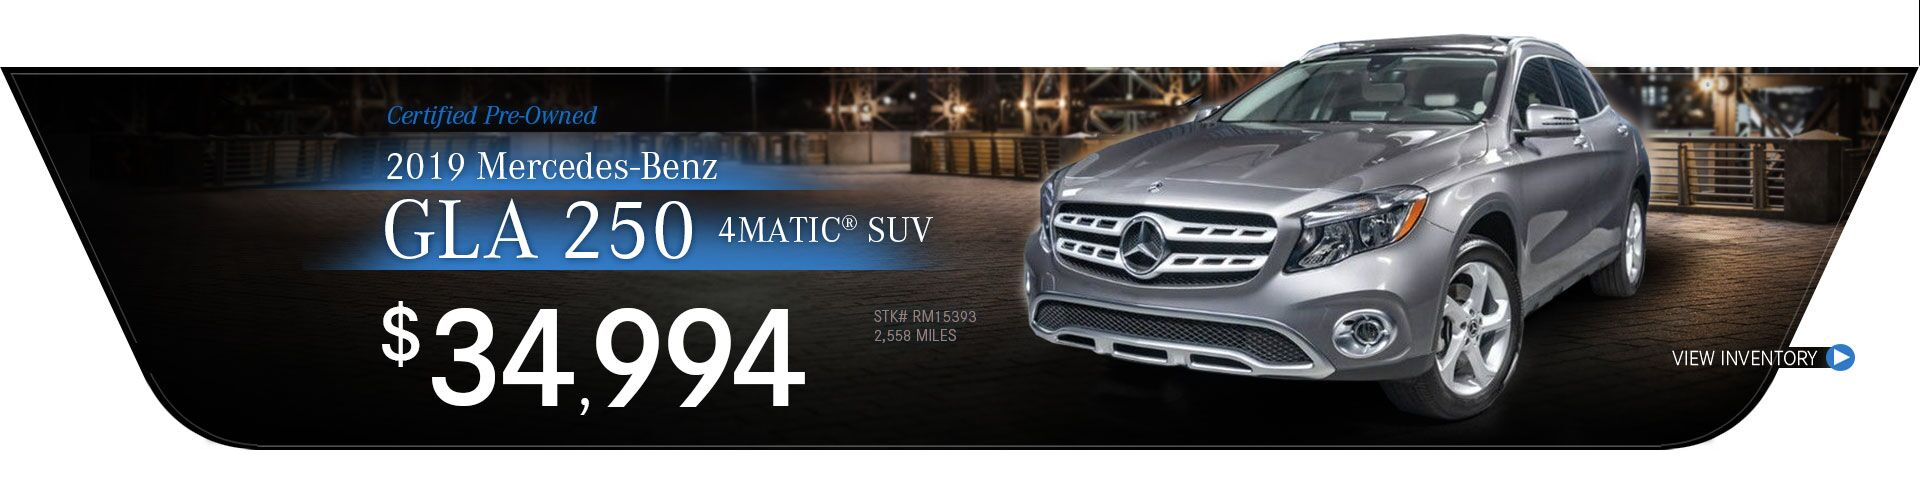 2019 Mercedes-Benz Certified Pre-Owned GLA 250 4MATIC SUV